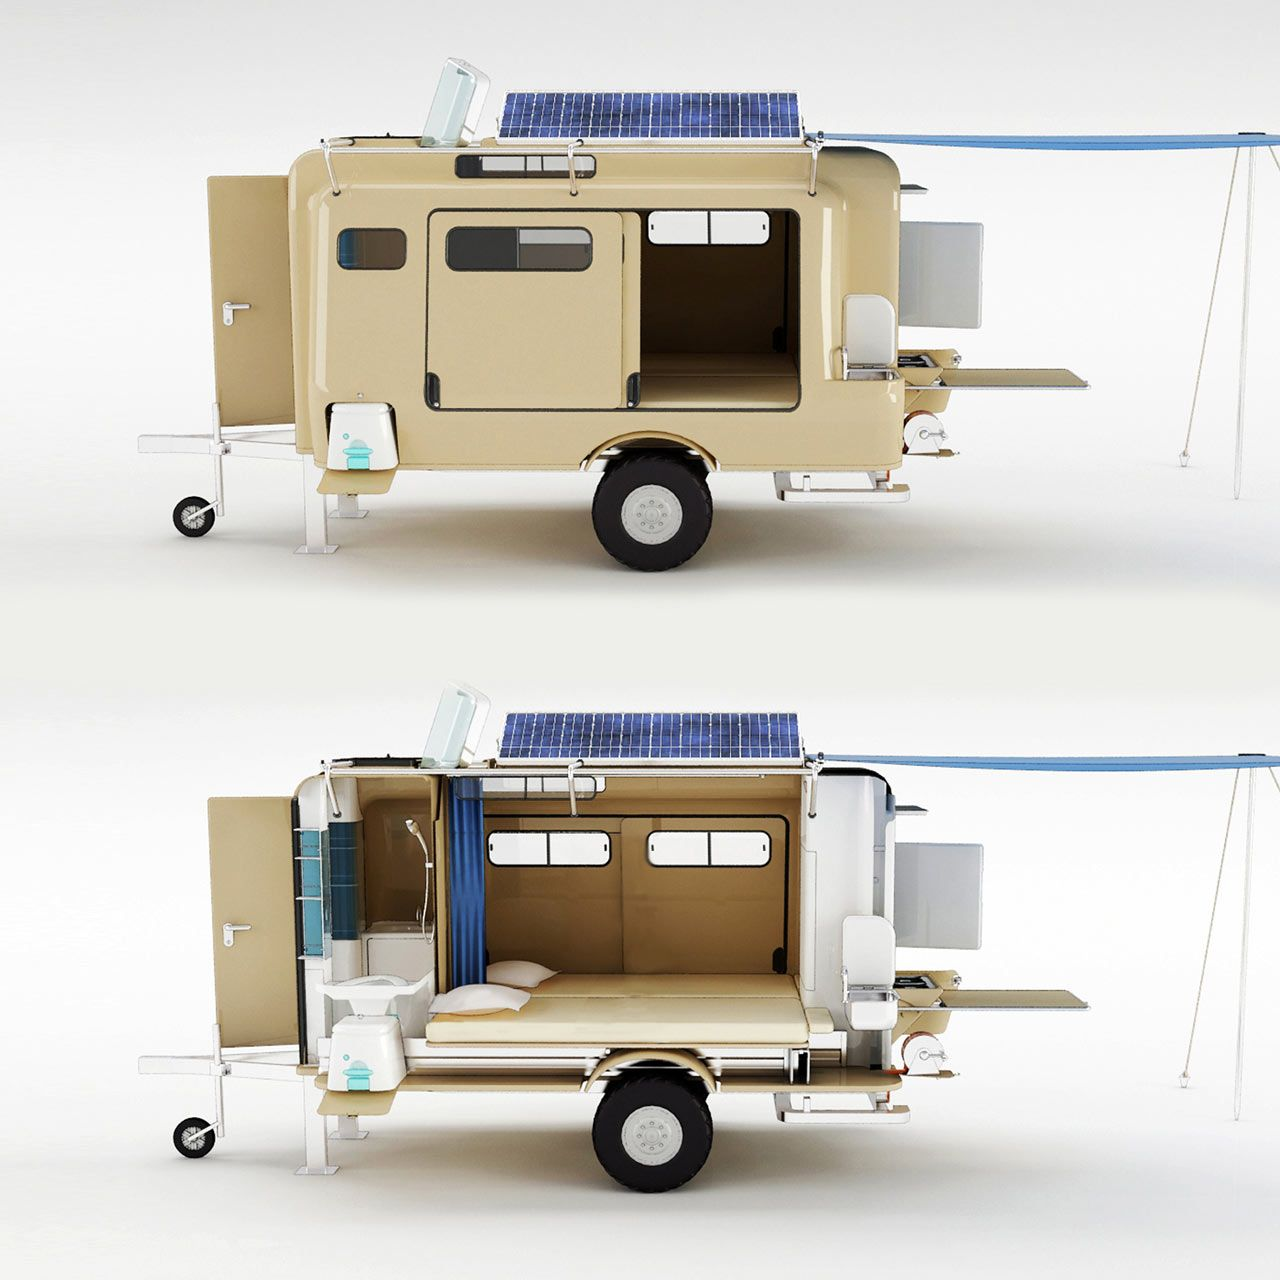 A' Design Awards 2016 Call for Entries Camper trailers